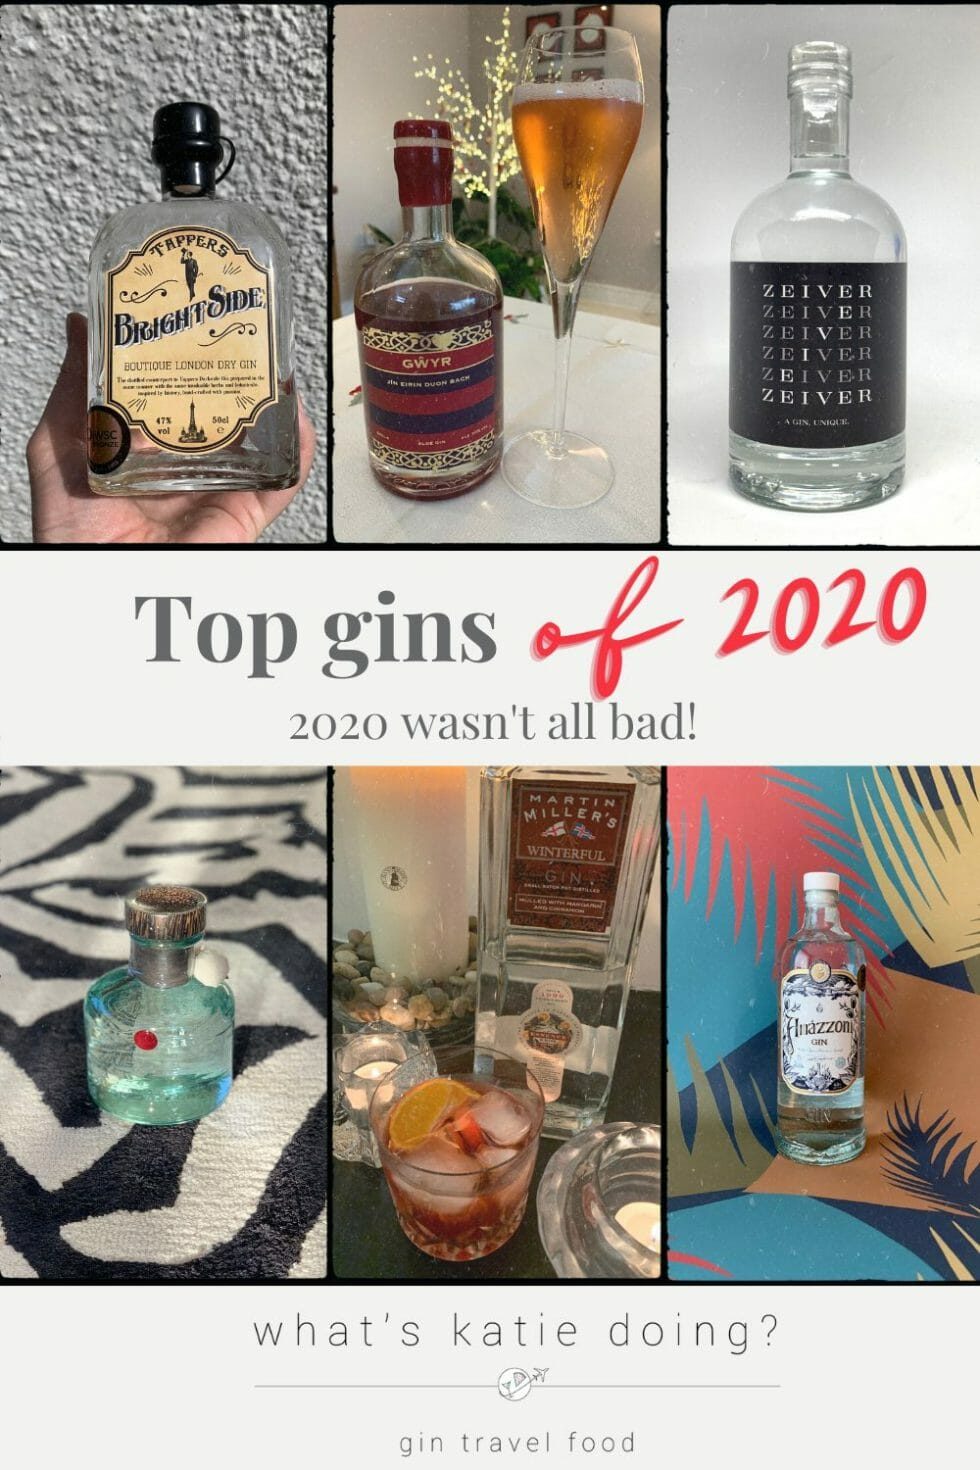 Top gins of 2020 - lots of new gins were launched despite the pandemic!